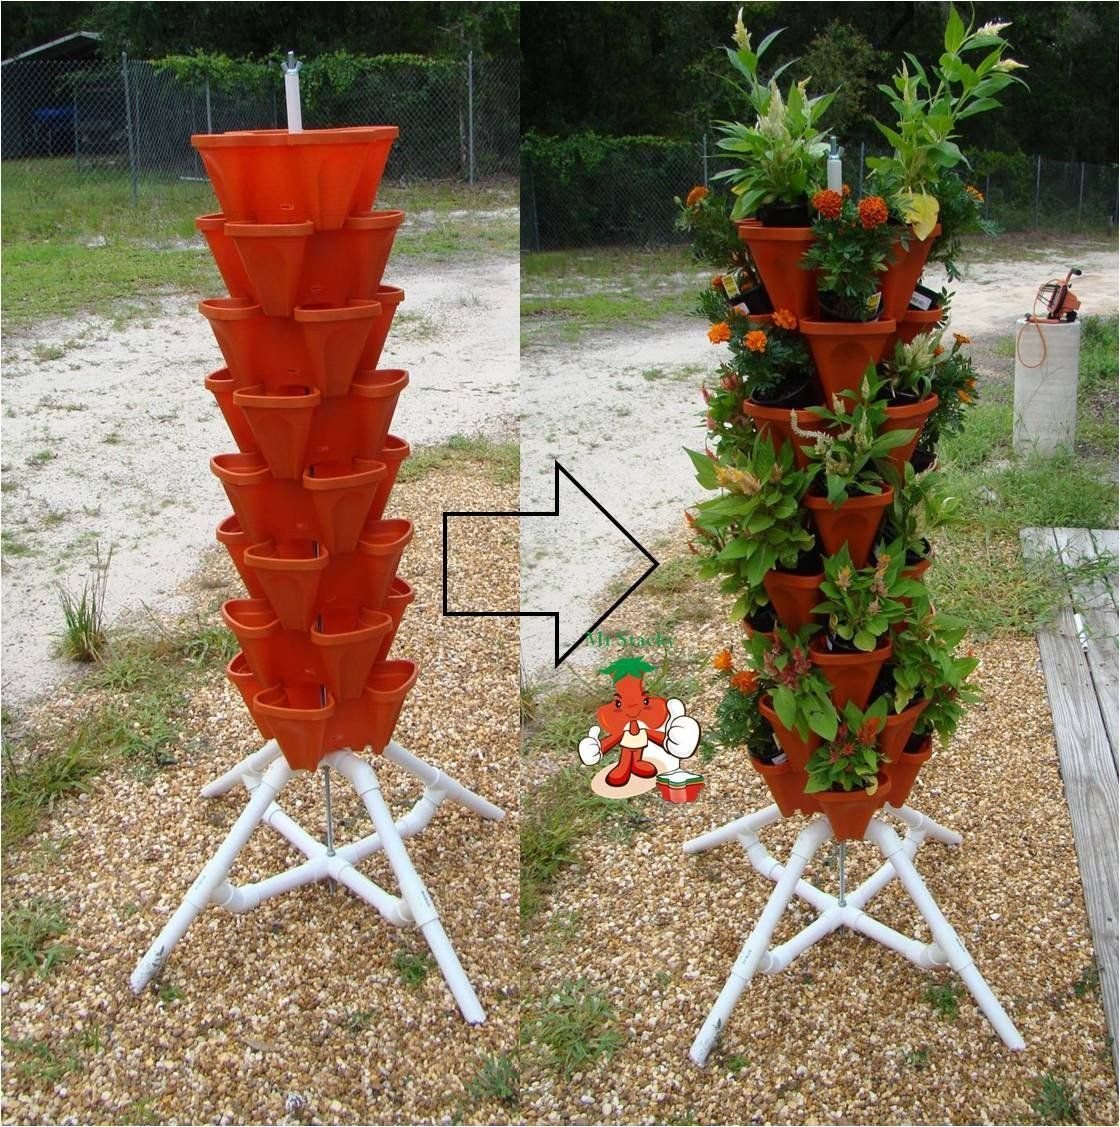 Amazon Garden Pots And Planters Amazon Vertical Gardening Tiered Tower Indoor